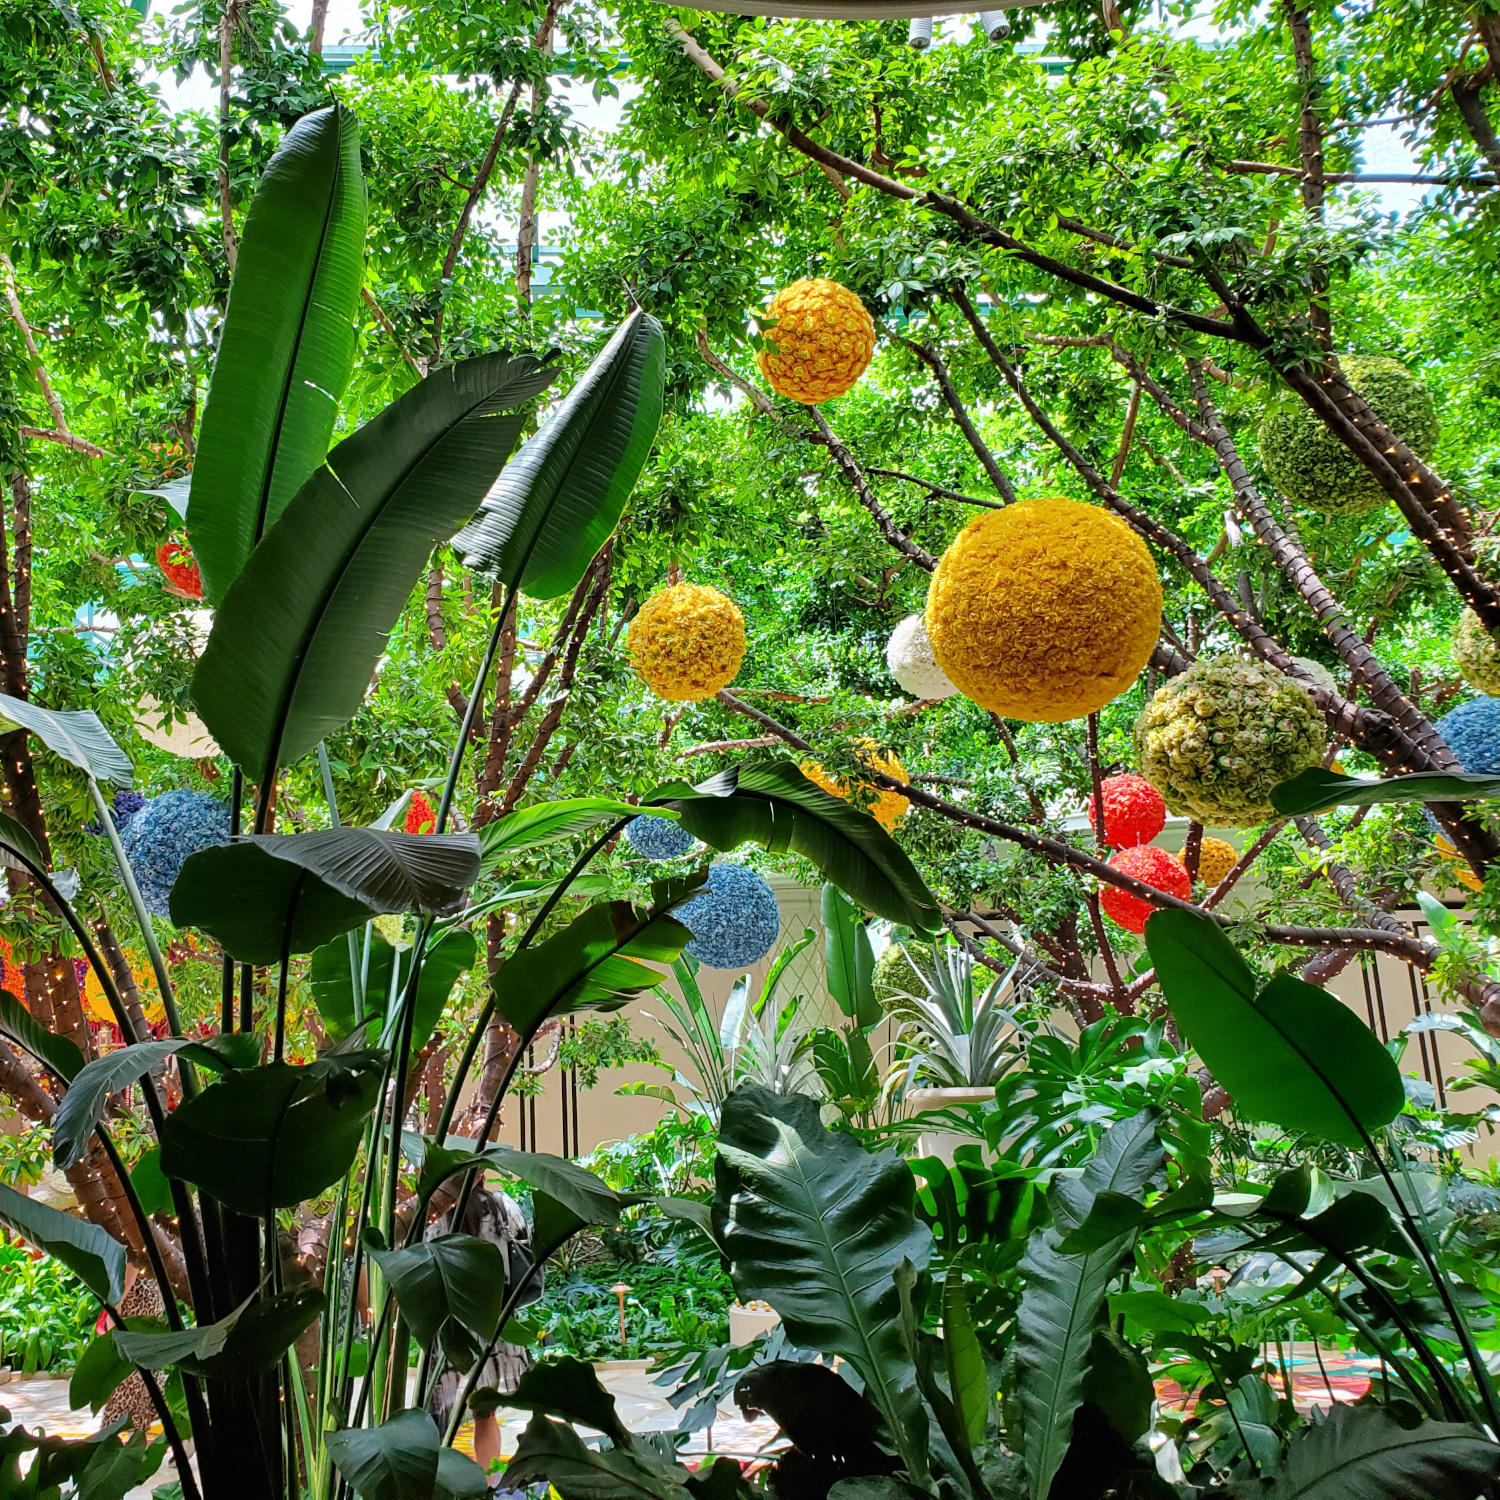 An indoor jungle near the entrance to a Las Vegas hotel